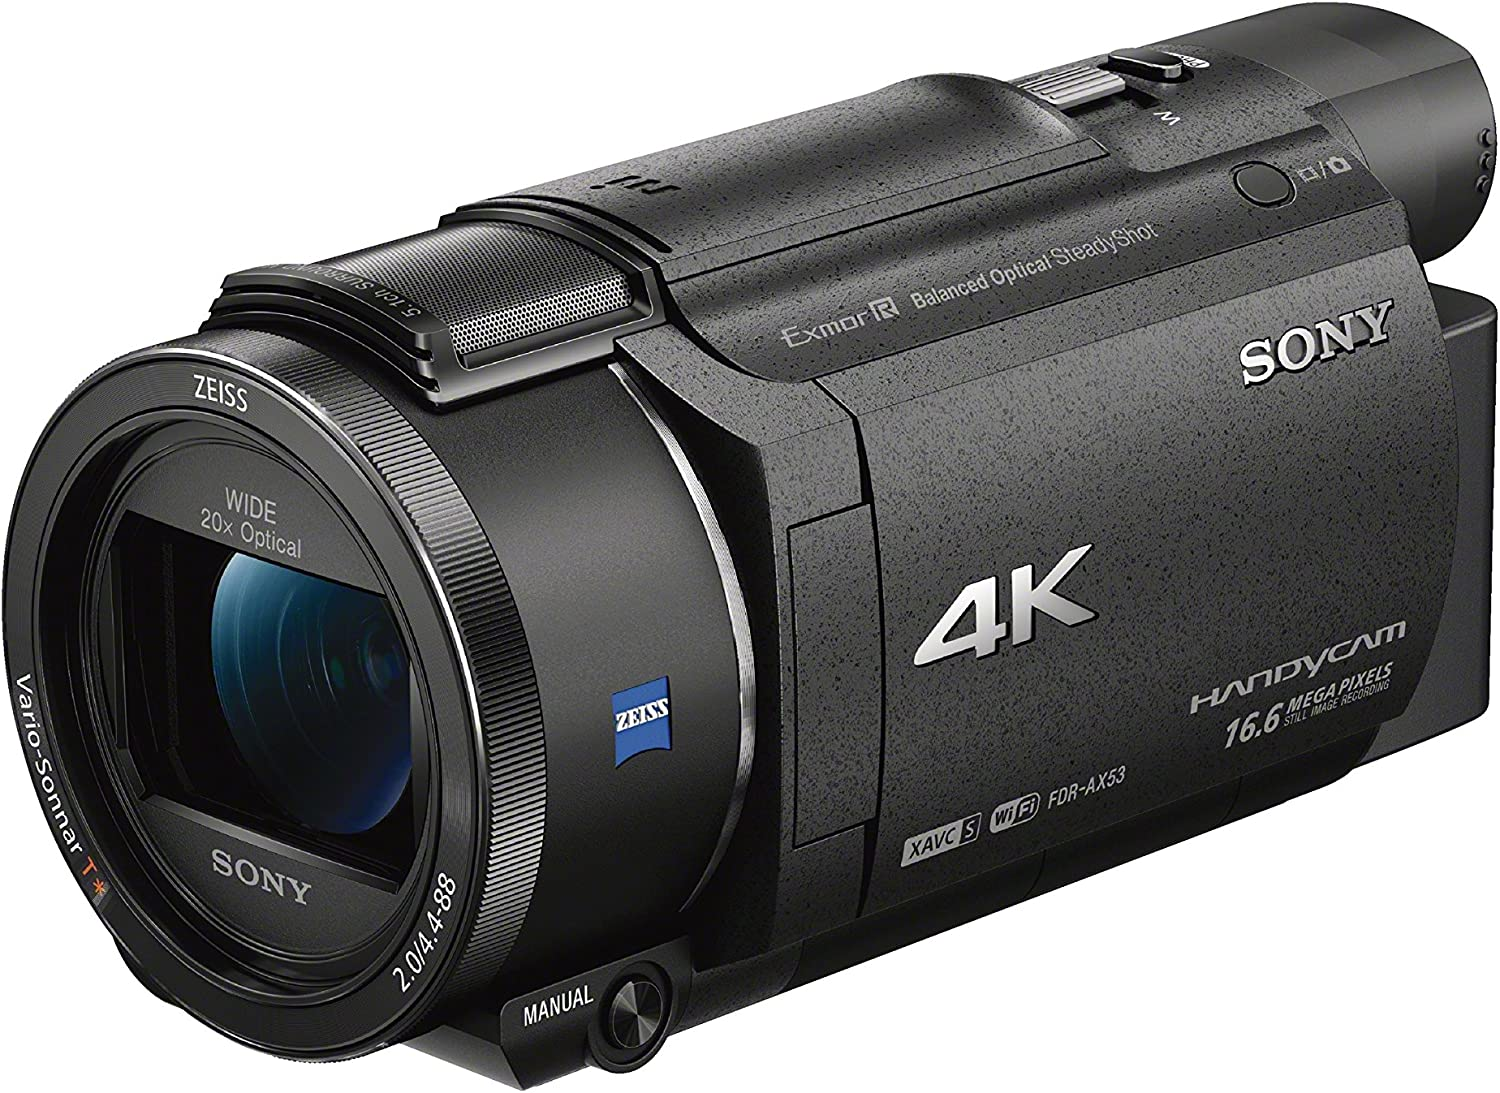 Sony FDR-AX33 4K best low light video Handycam